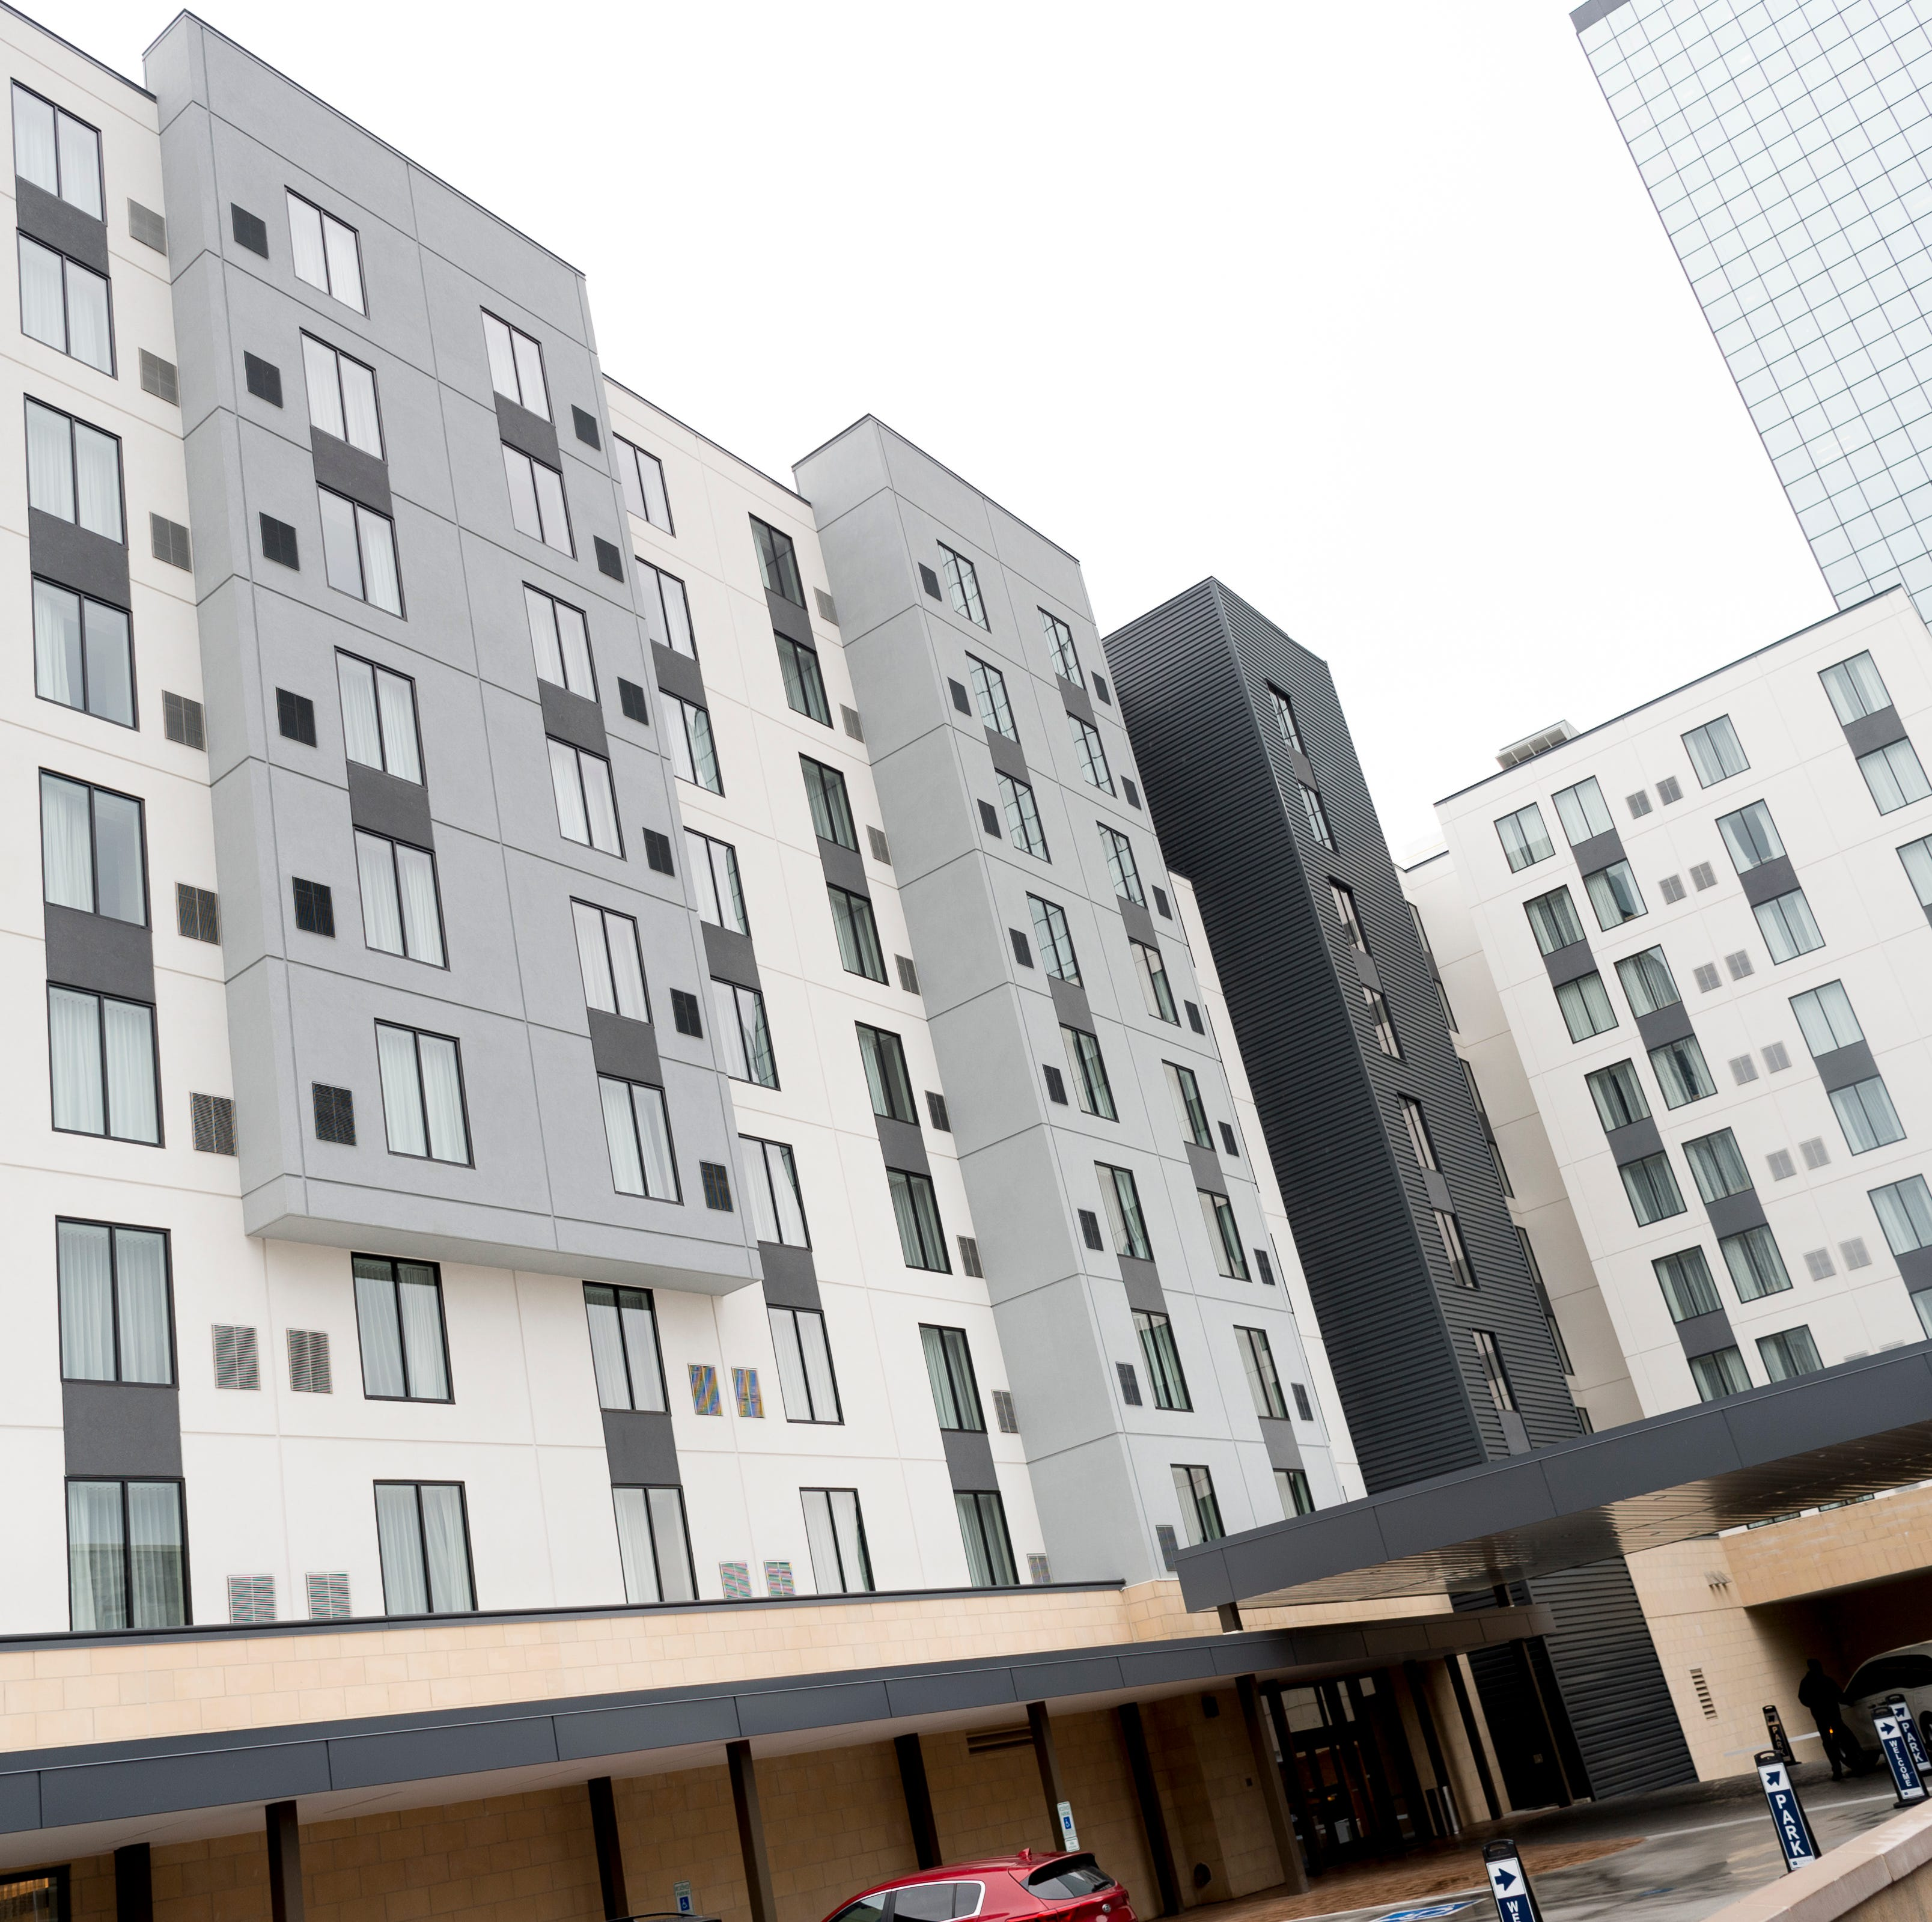 'Urban elegance': Courtyard and Residence Inn by Marriott opens downtown as 2 hotels in 1